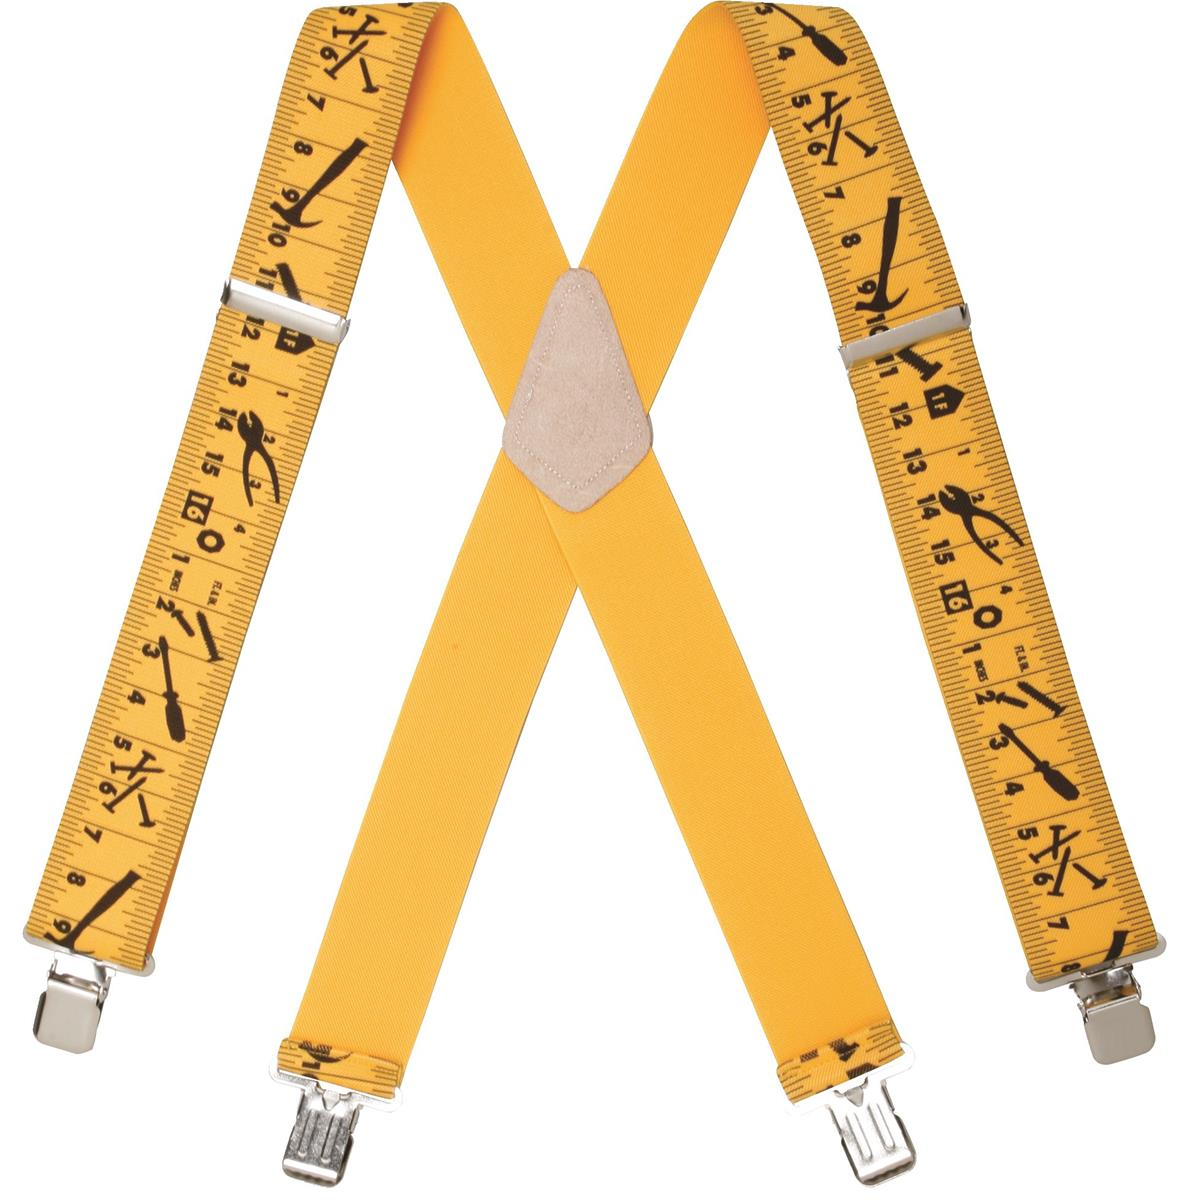 Heavy Duty Clip On Ruler Suspenders Gempler S